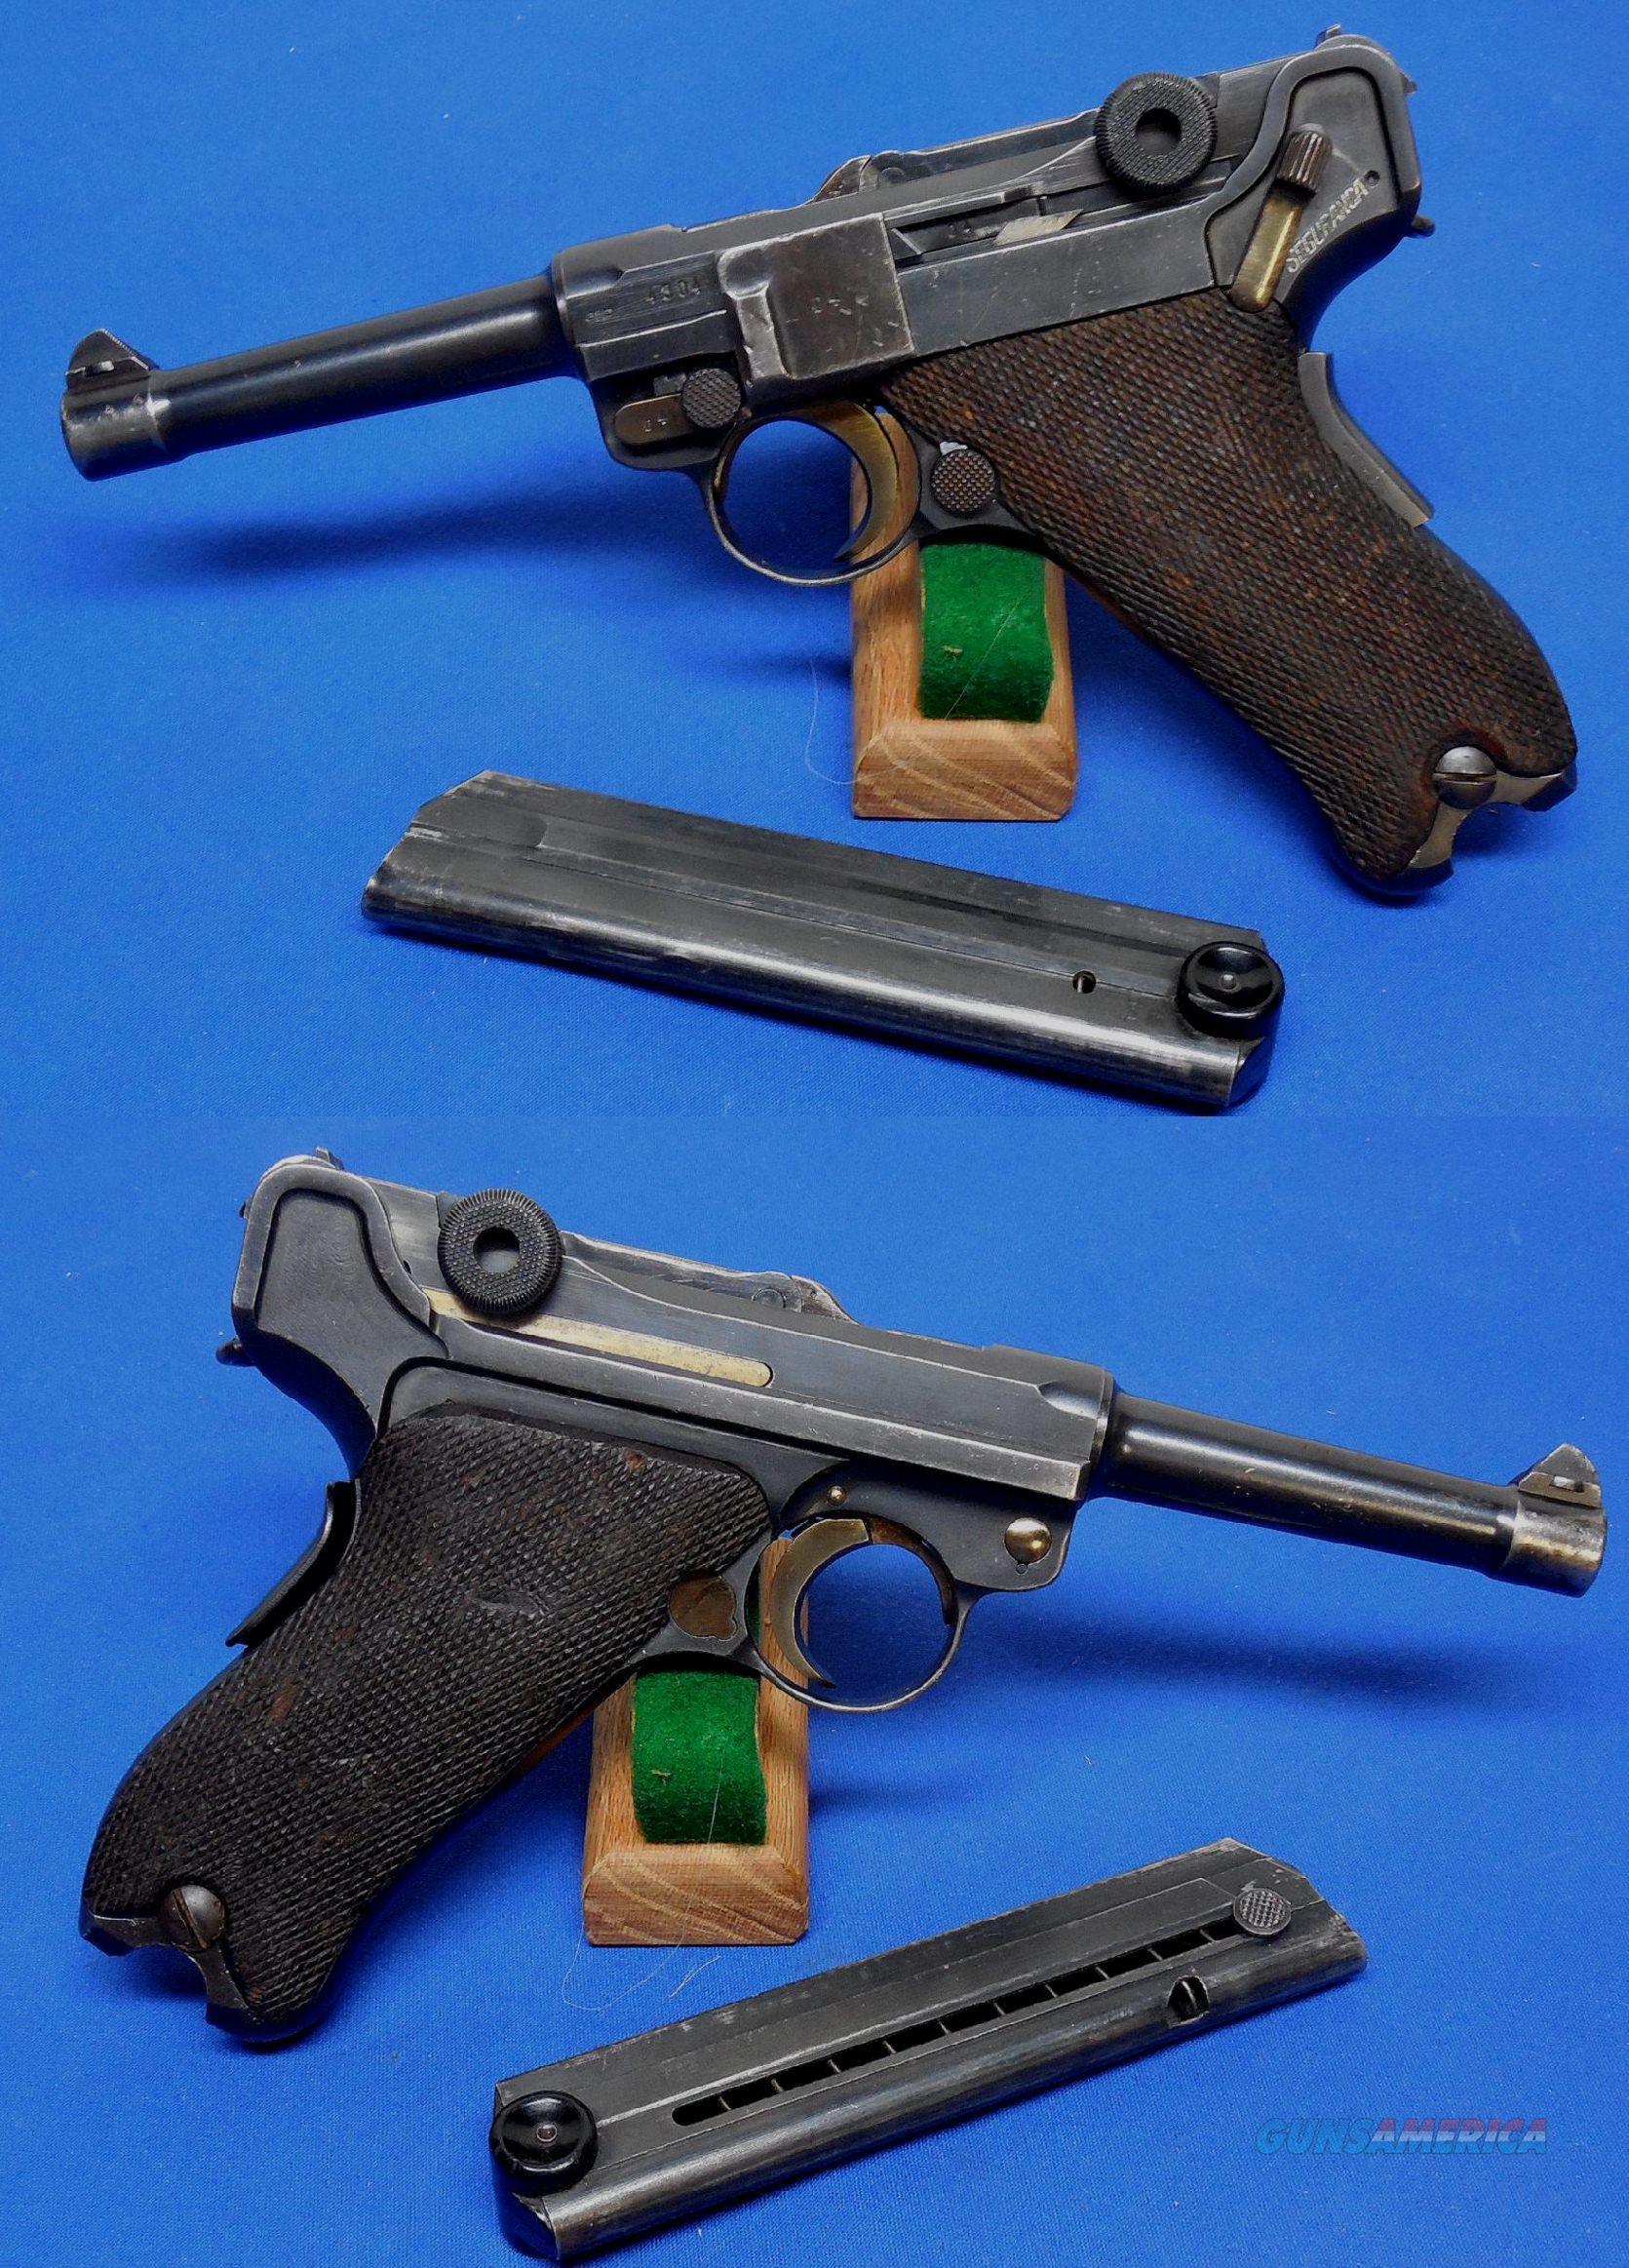 """Luger Mauser Banner 06/34 """"Portuguese Contract"""" Pistol. """"Extremely Rare""""  Guns > Pistols > Luger Pistols"""